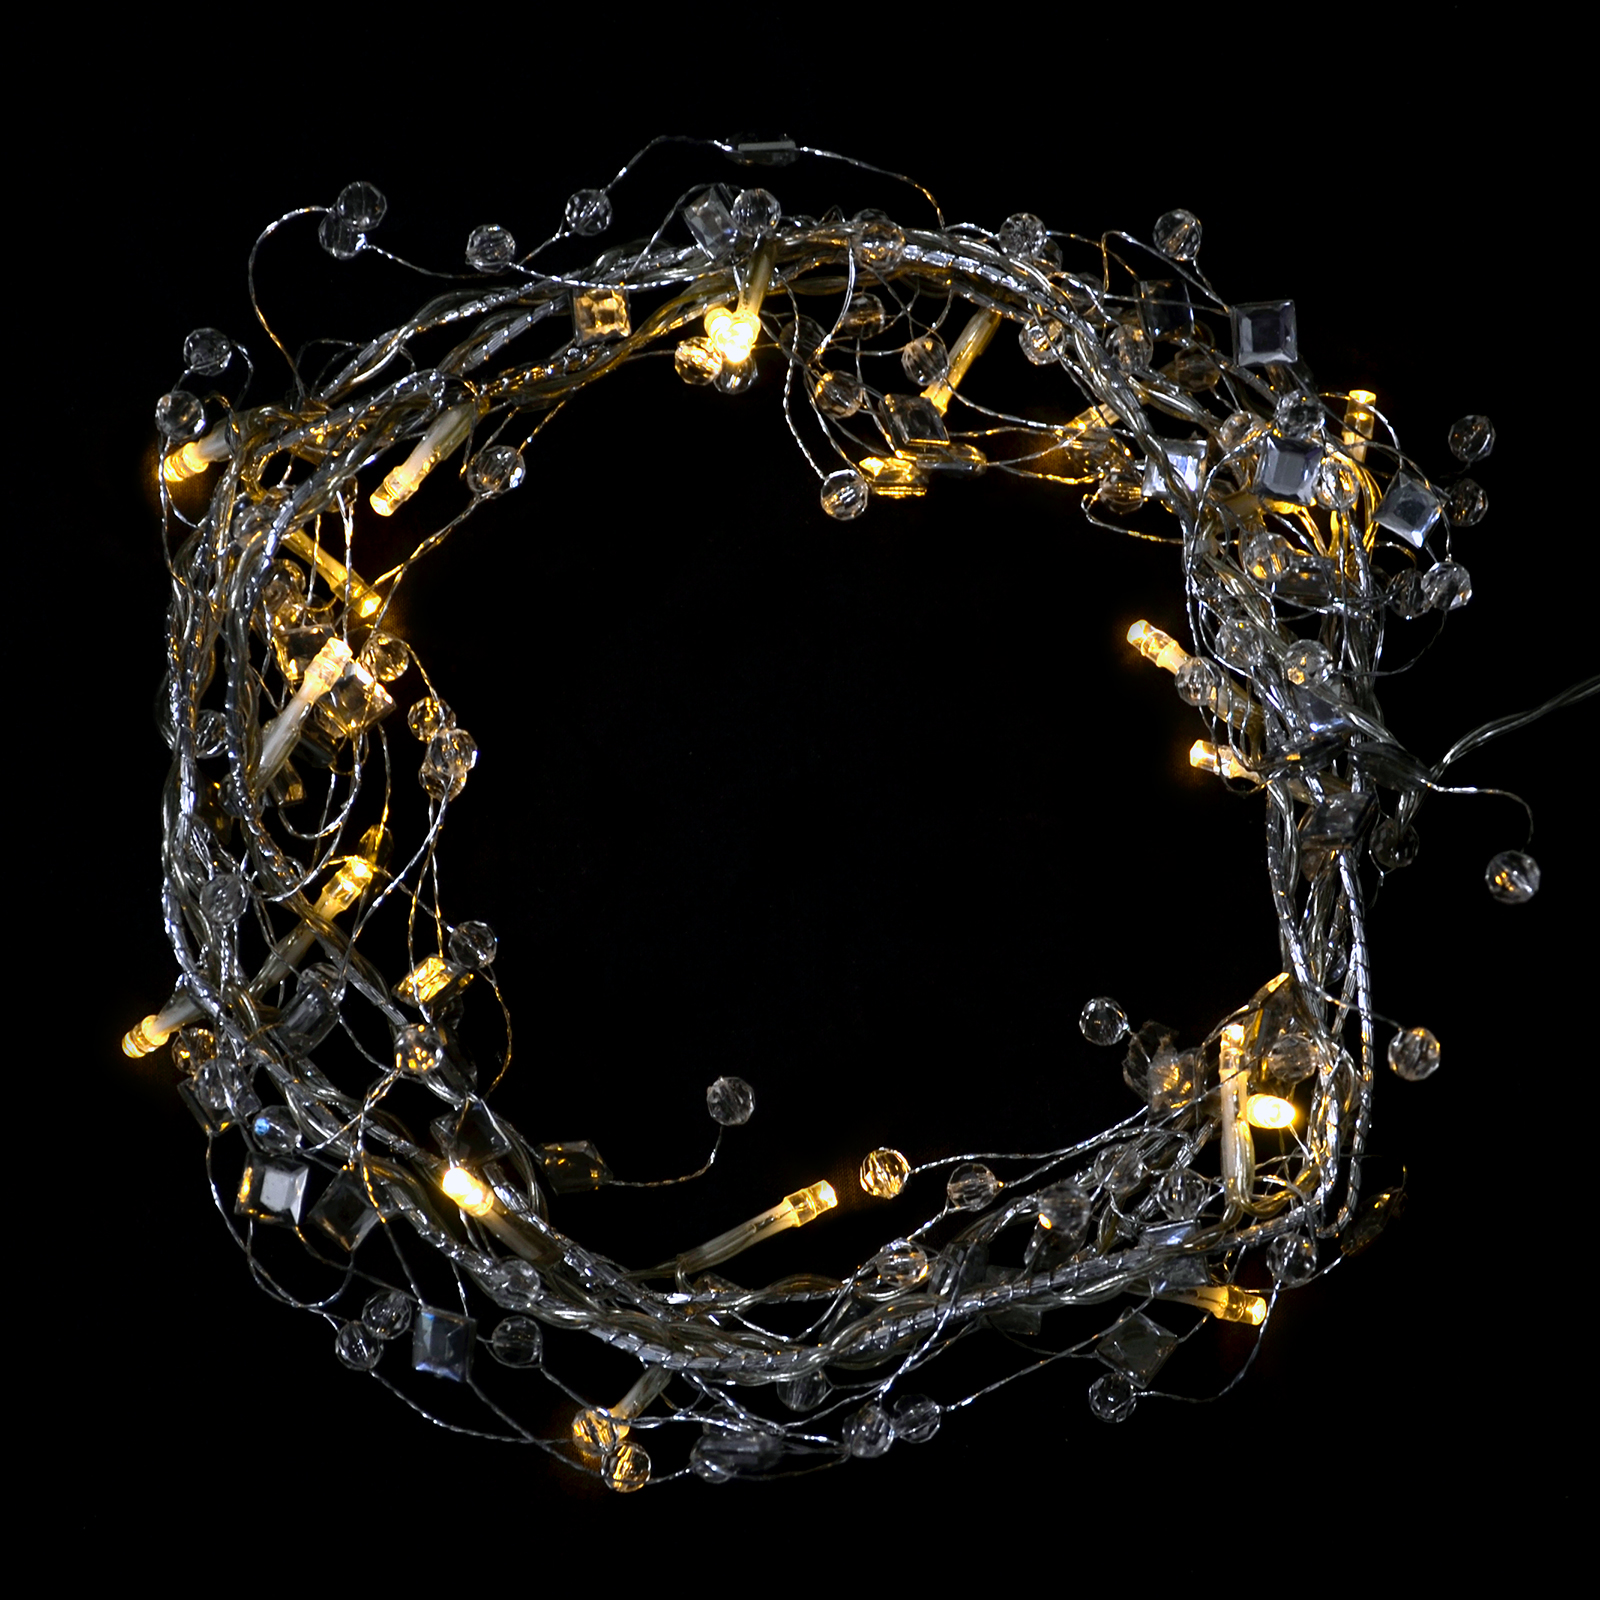 Led Garland String Lights : 20 LED Lights Garland String Crystal Beads Flower Leaf Christmas Battery Home eBay